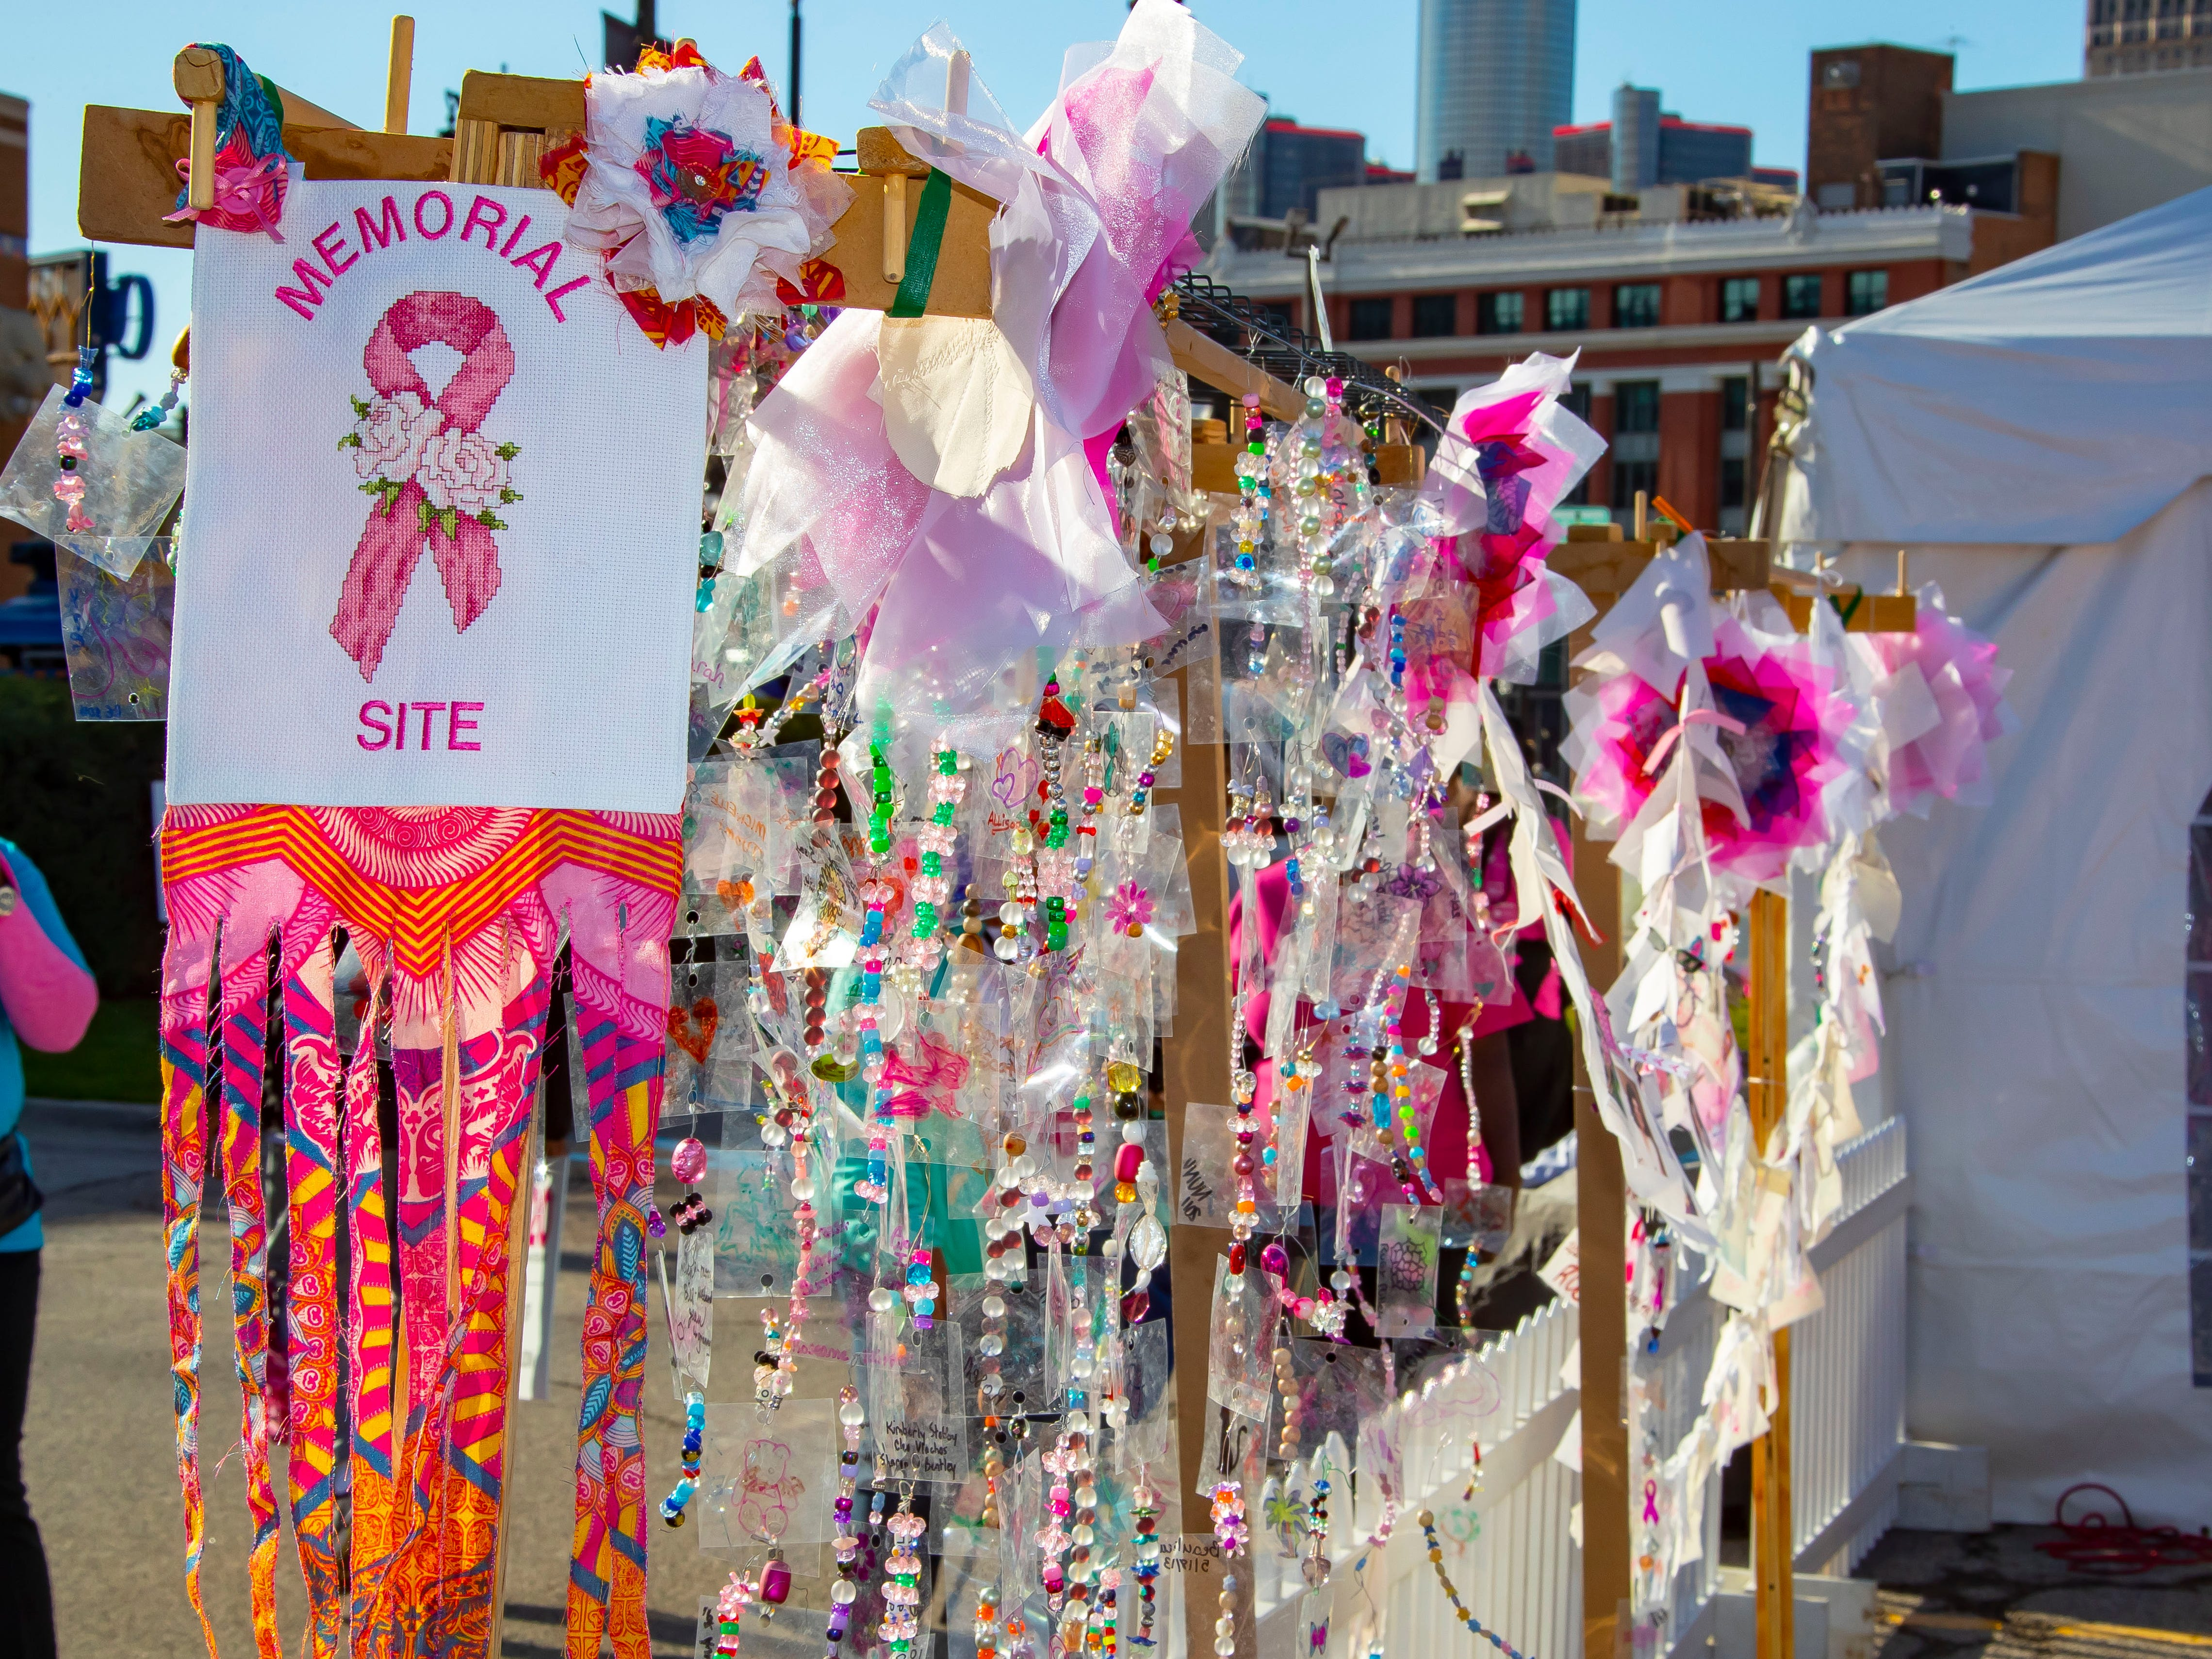 A memory rack for participants to hang mementos honoring loved ones that lost their battle with cancer during the Susan G. Komen Race for the Cure at Comerica Park in Detroit Michigan. (Photo by Dave Reginek-Special to Detroit News)